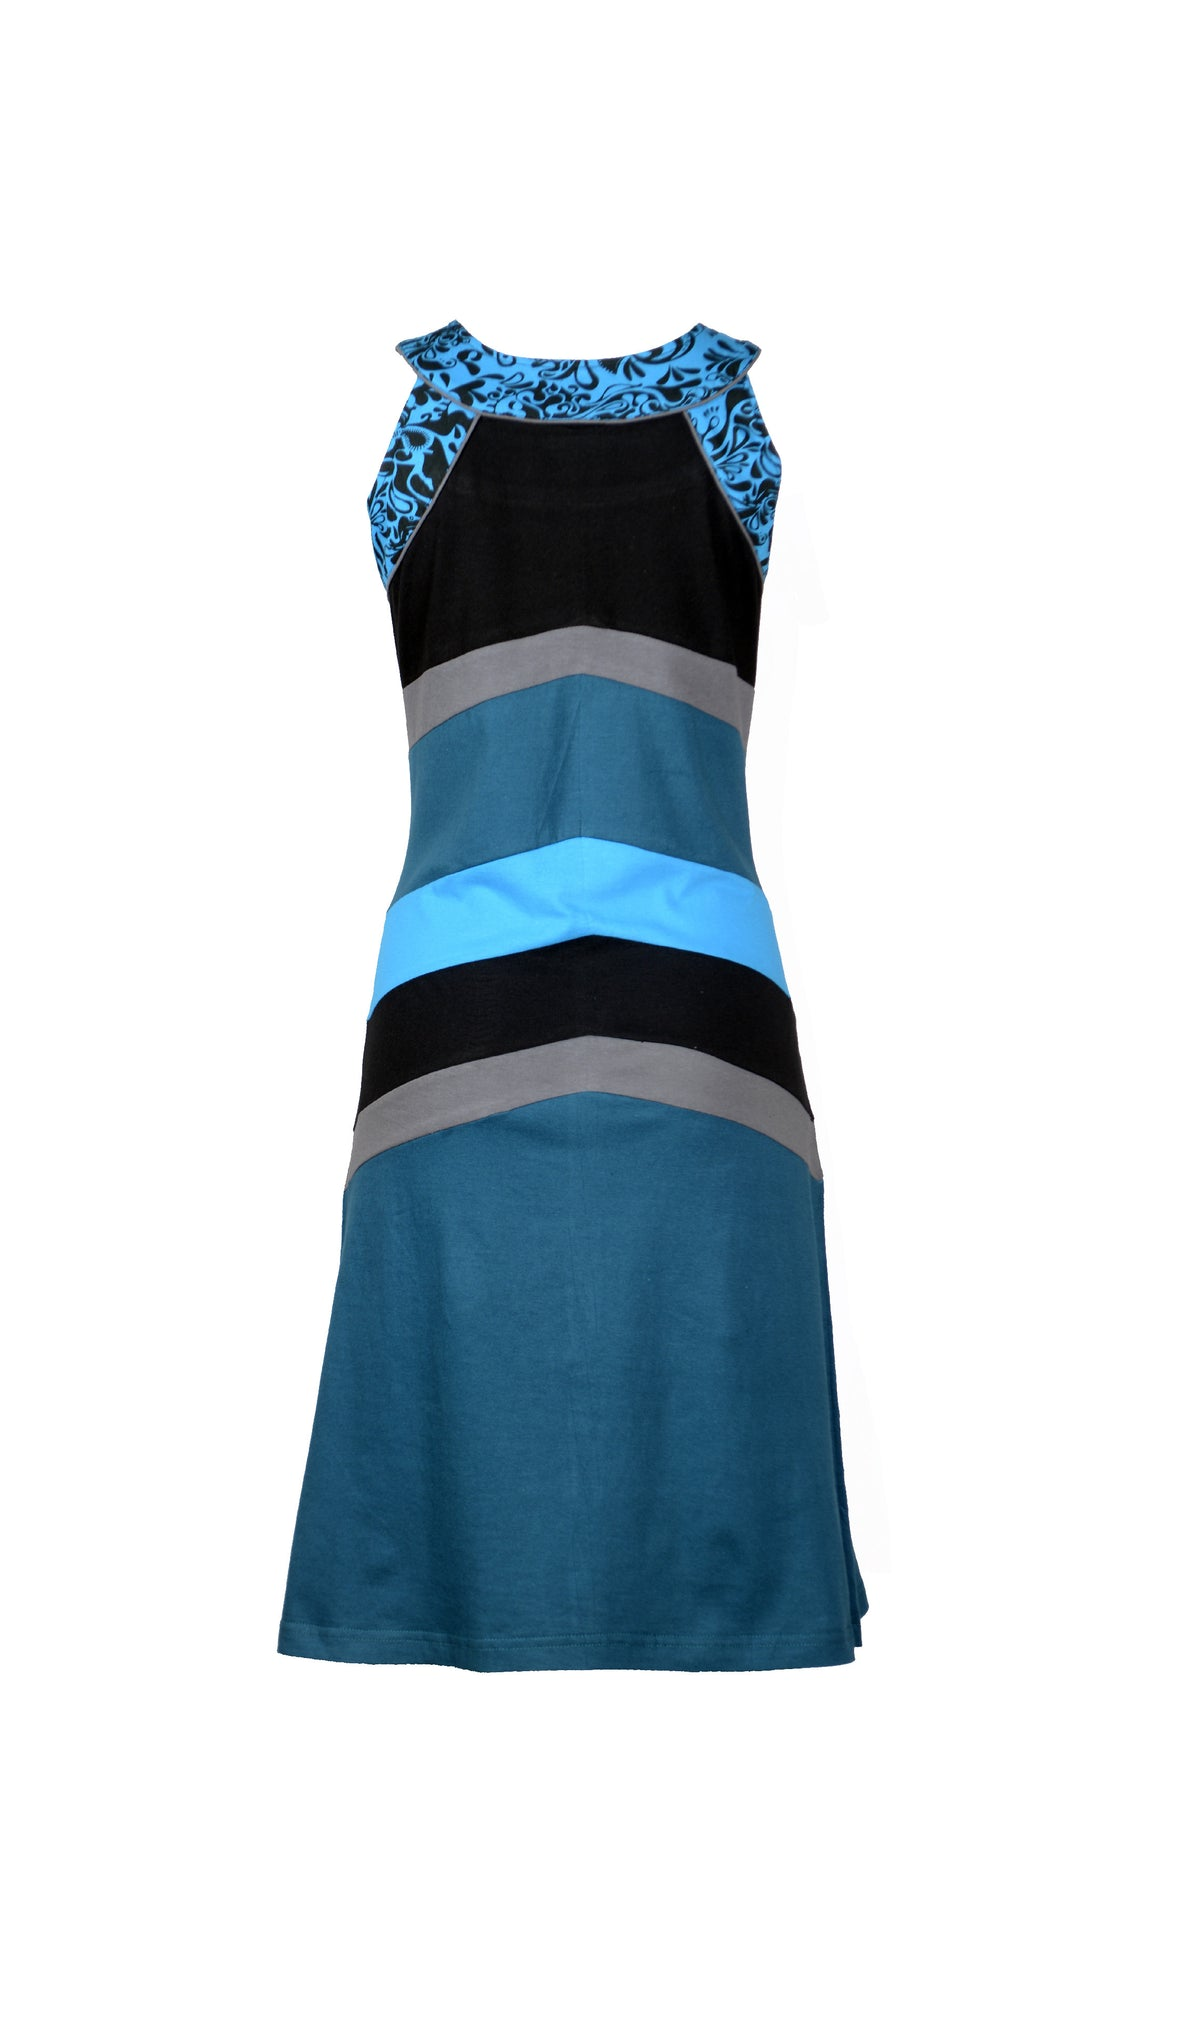 Ladies Summer Sleeveless Round Neck Dress Patch and Print Design-Ocean - Craze Trade Limited